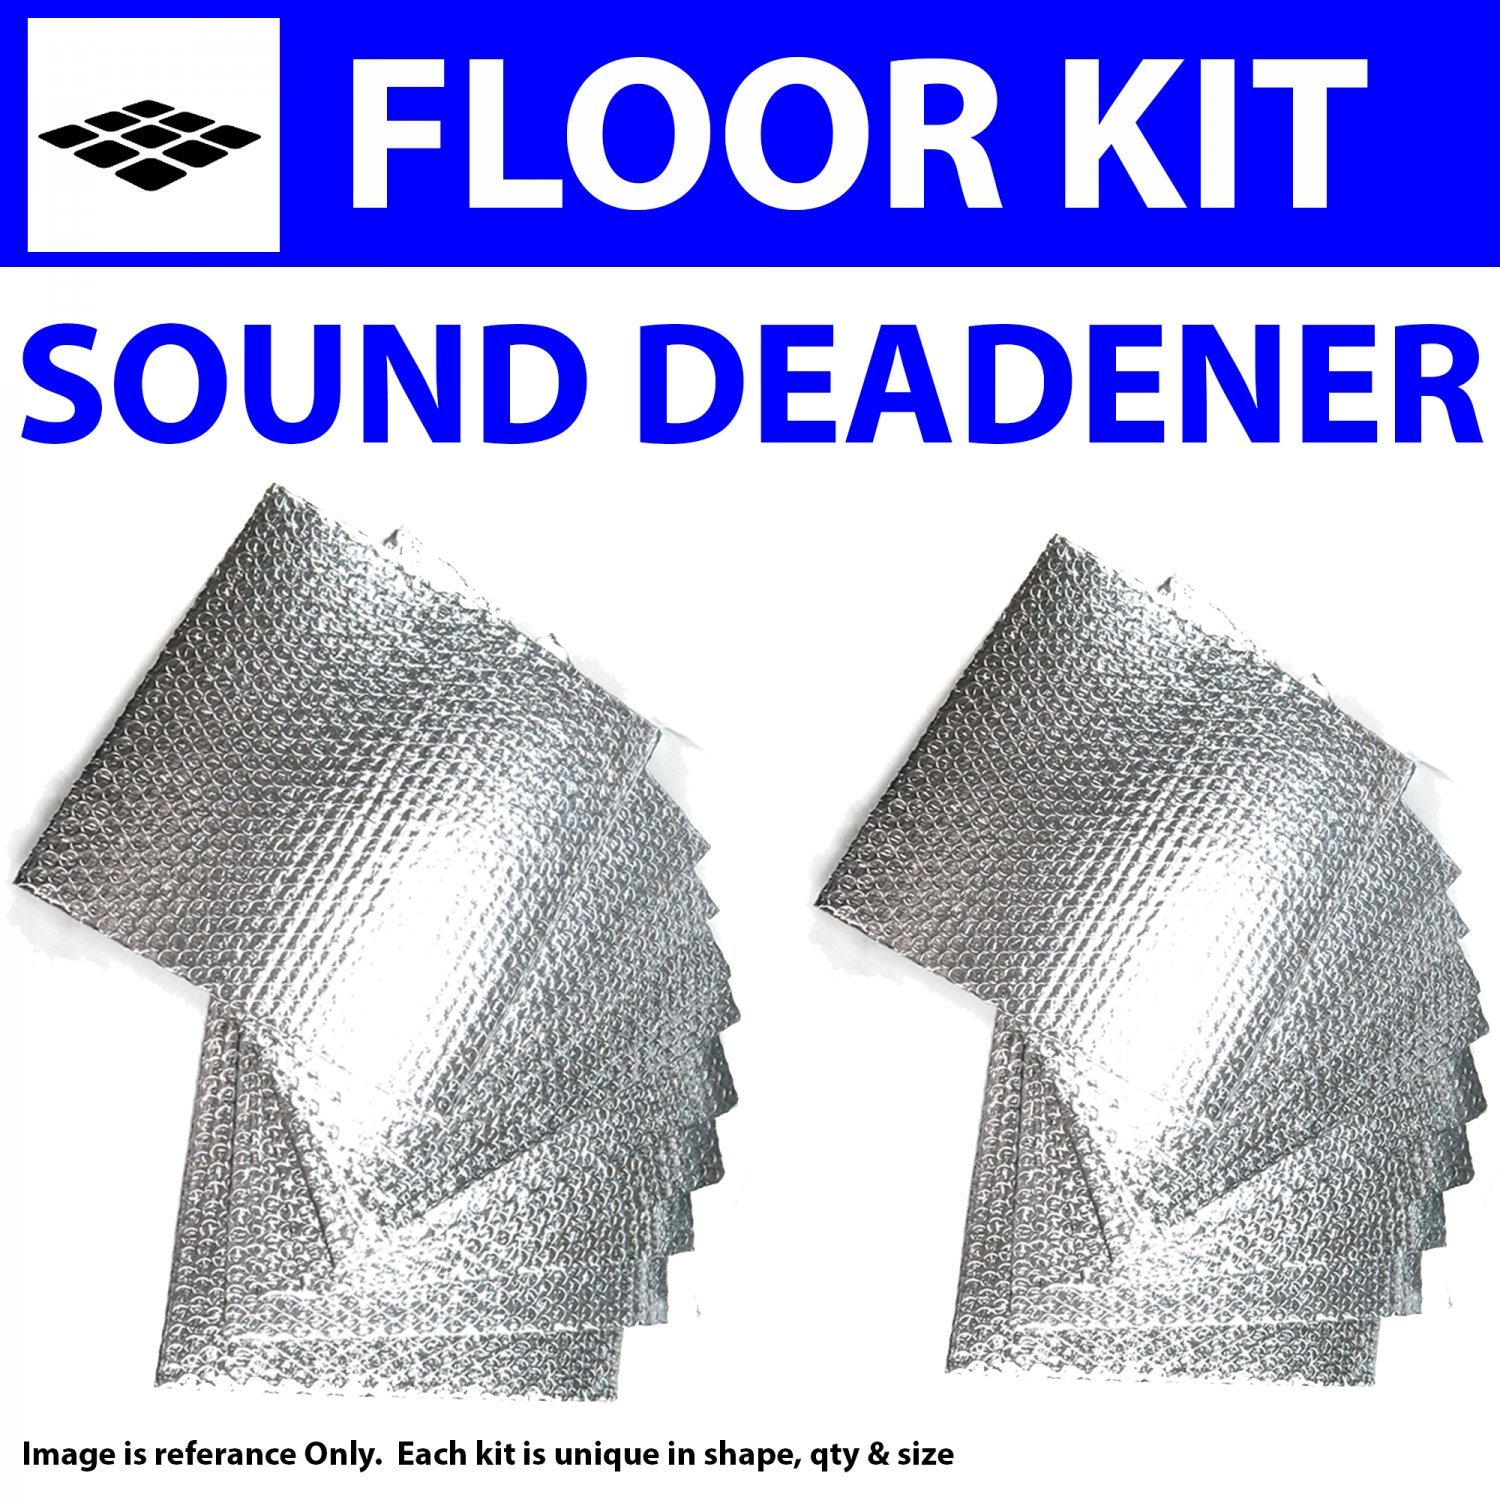 Zirgo 314490 Heat and Sound Deadener for 55-58 Mopar Floor Kit 2876cm2